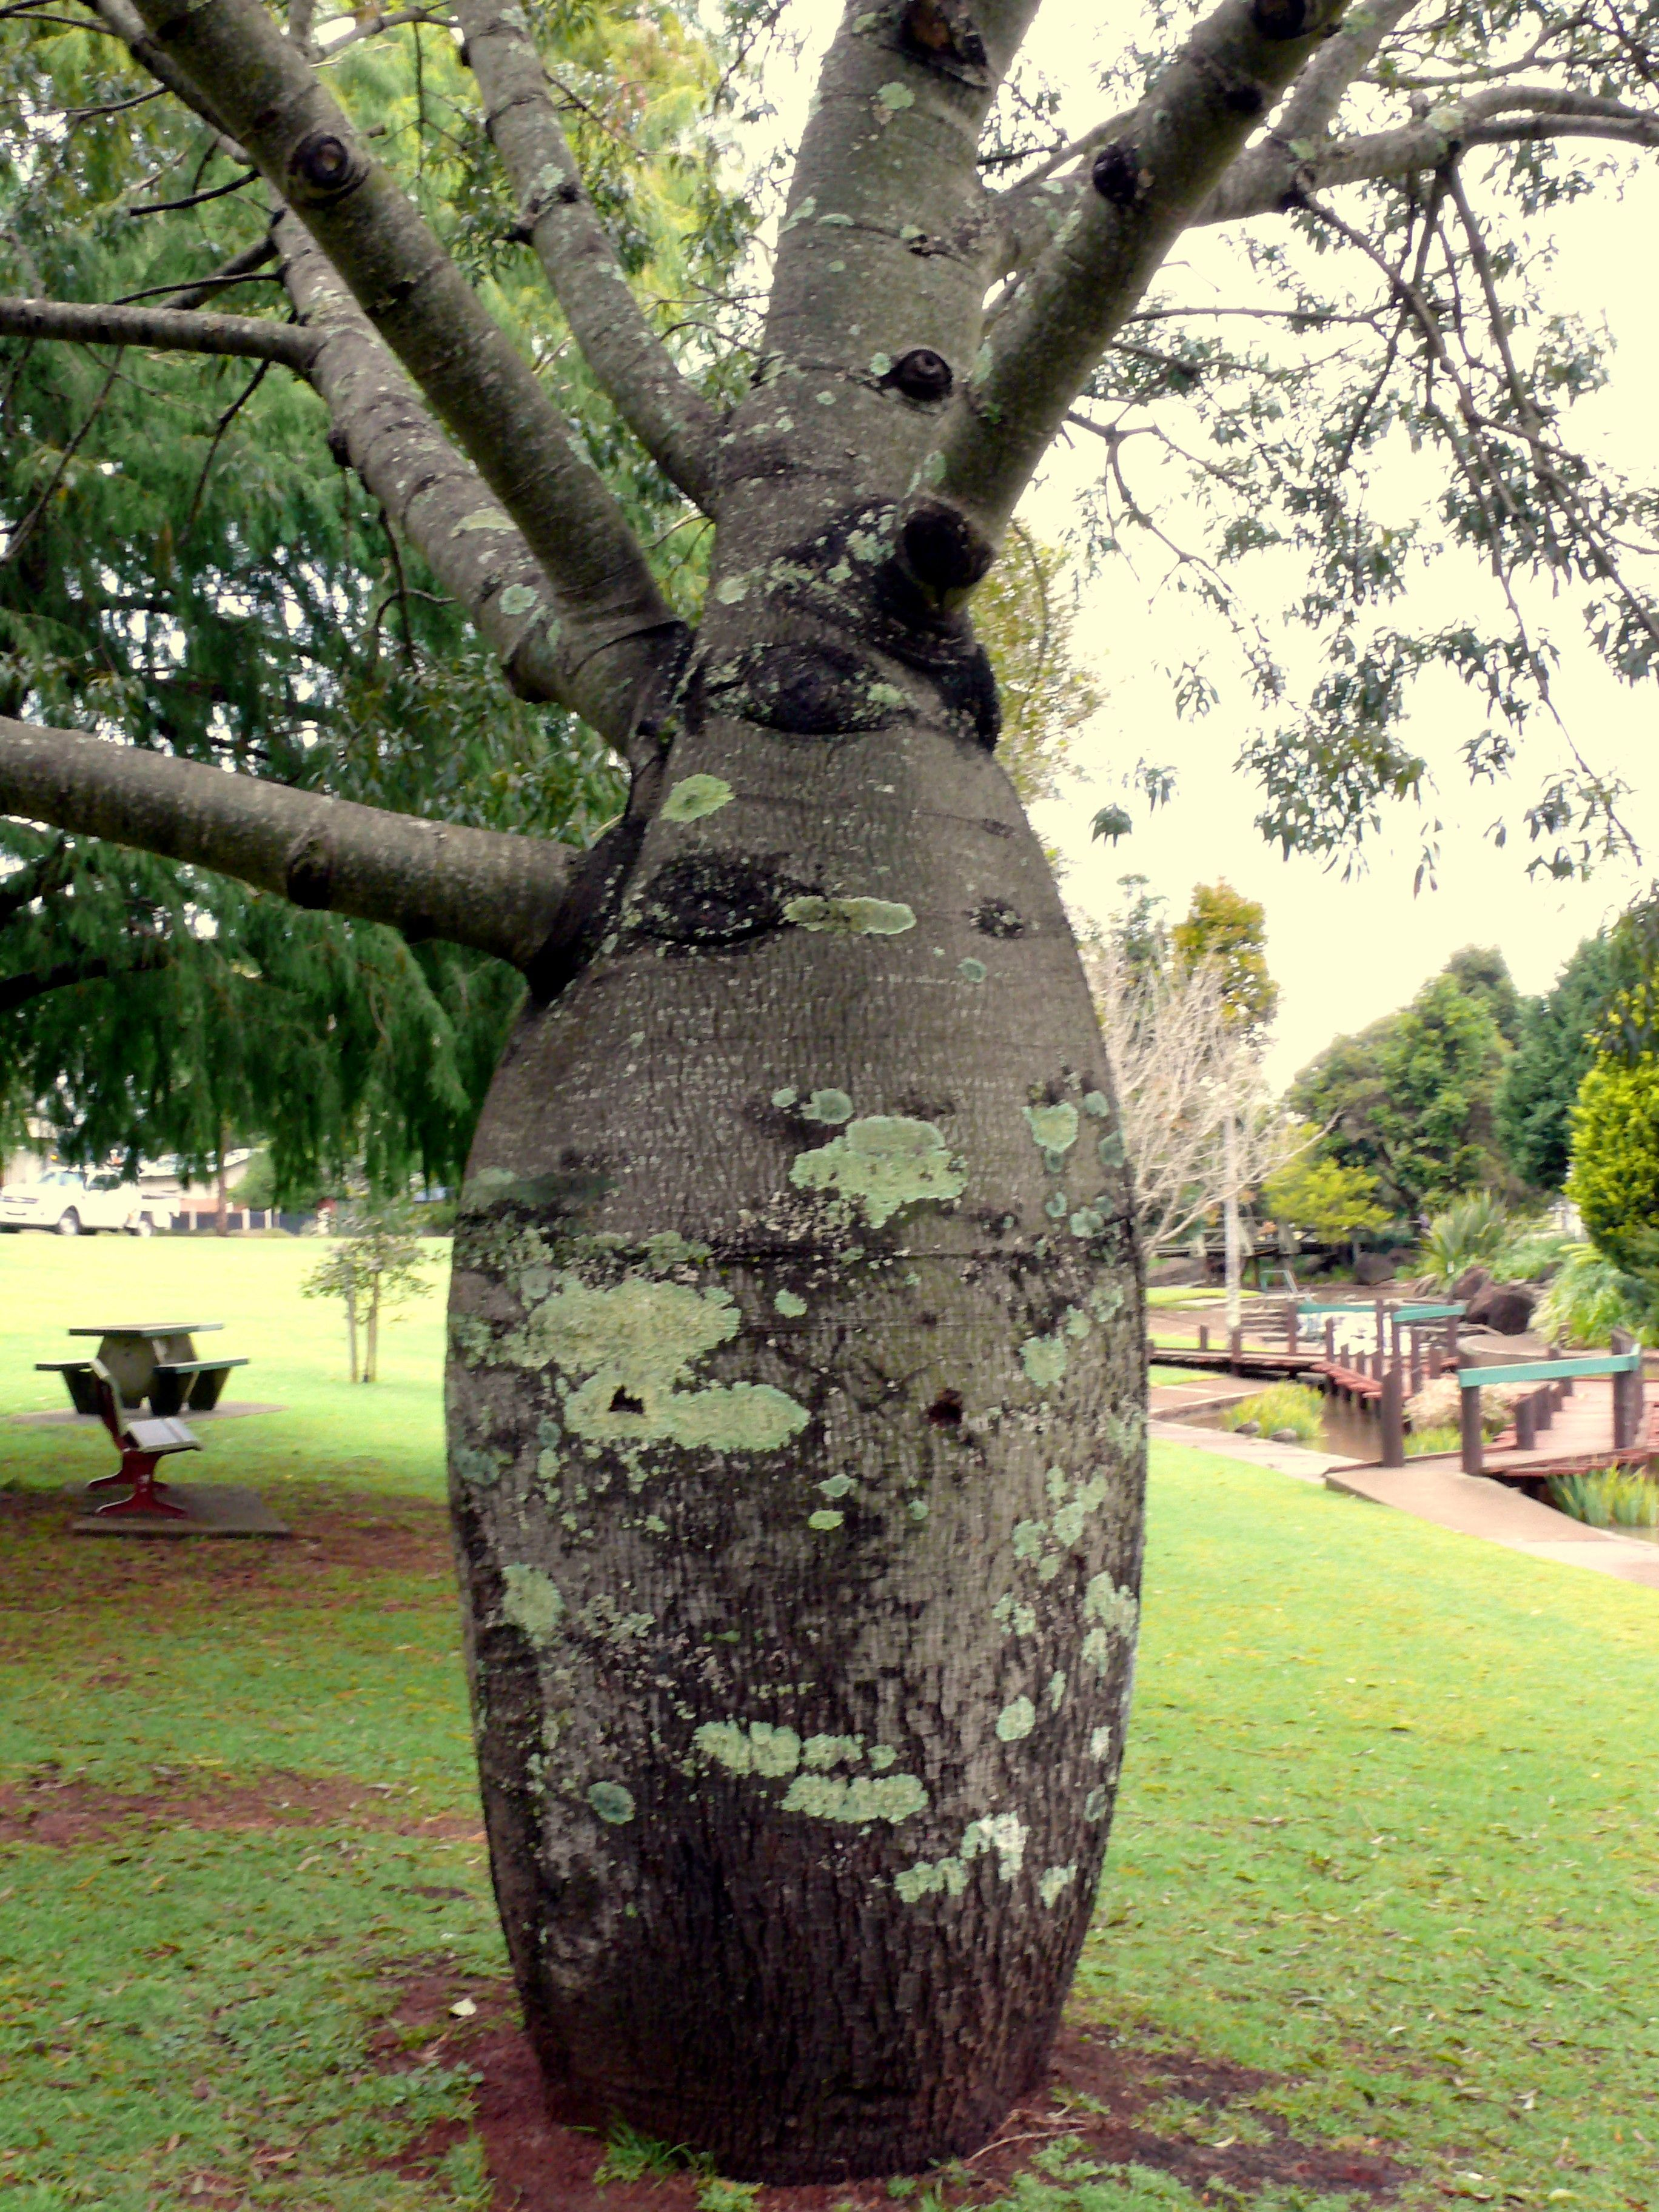 Baobab Tree Toowoomba Qld Australia Photo By Judith B Trimarchi Australia Photos Toowoomba Baobab Tree